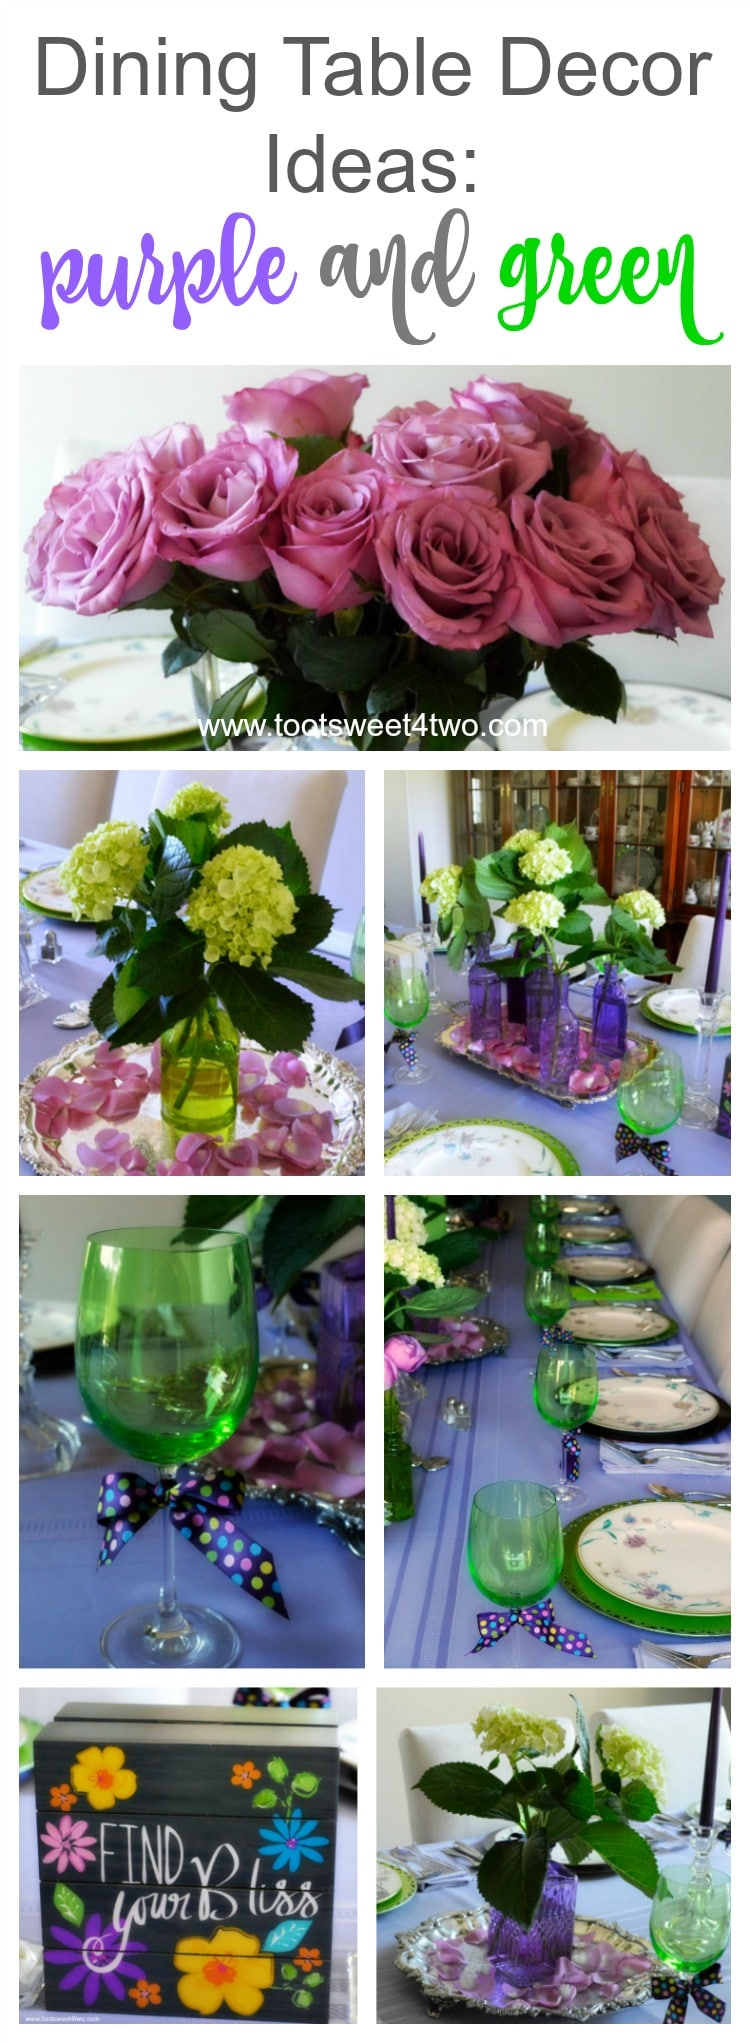 Dining table decor ideas purple and green toot sweet 4 two for Dining table accessories ideas